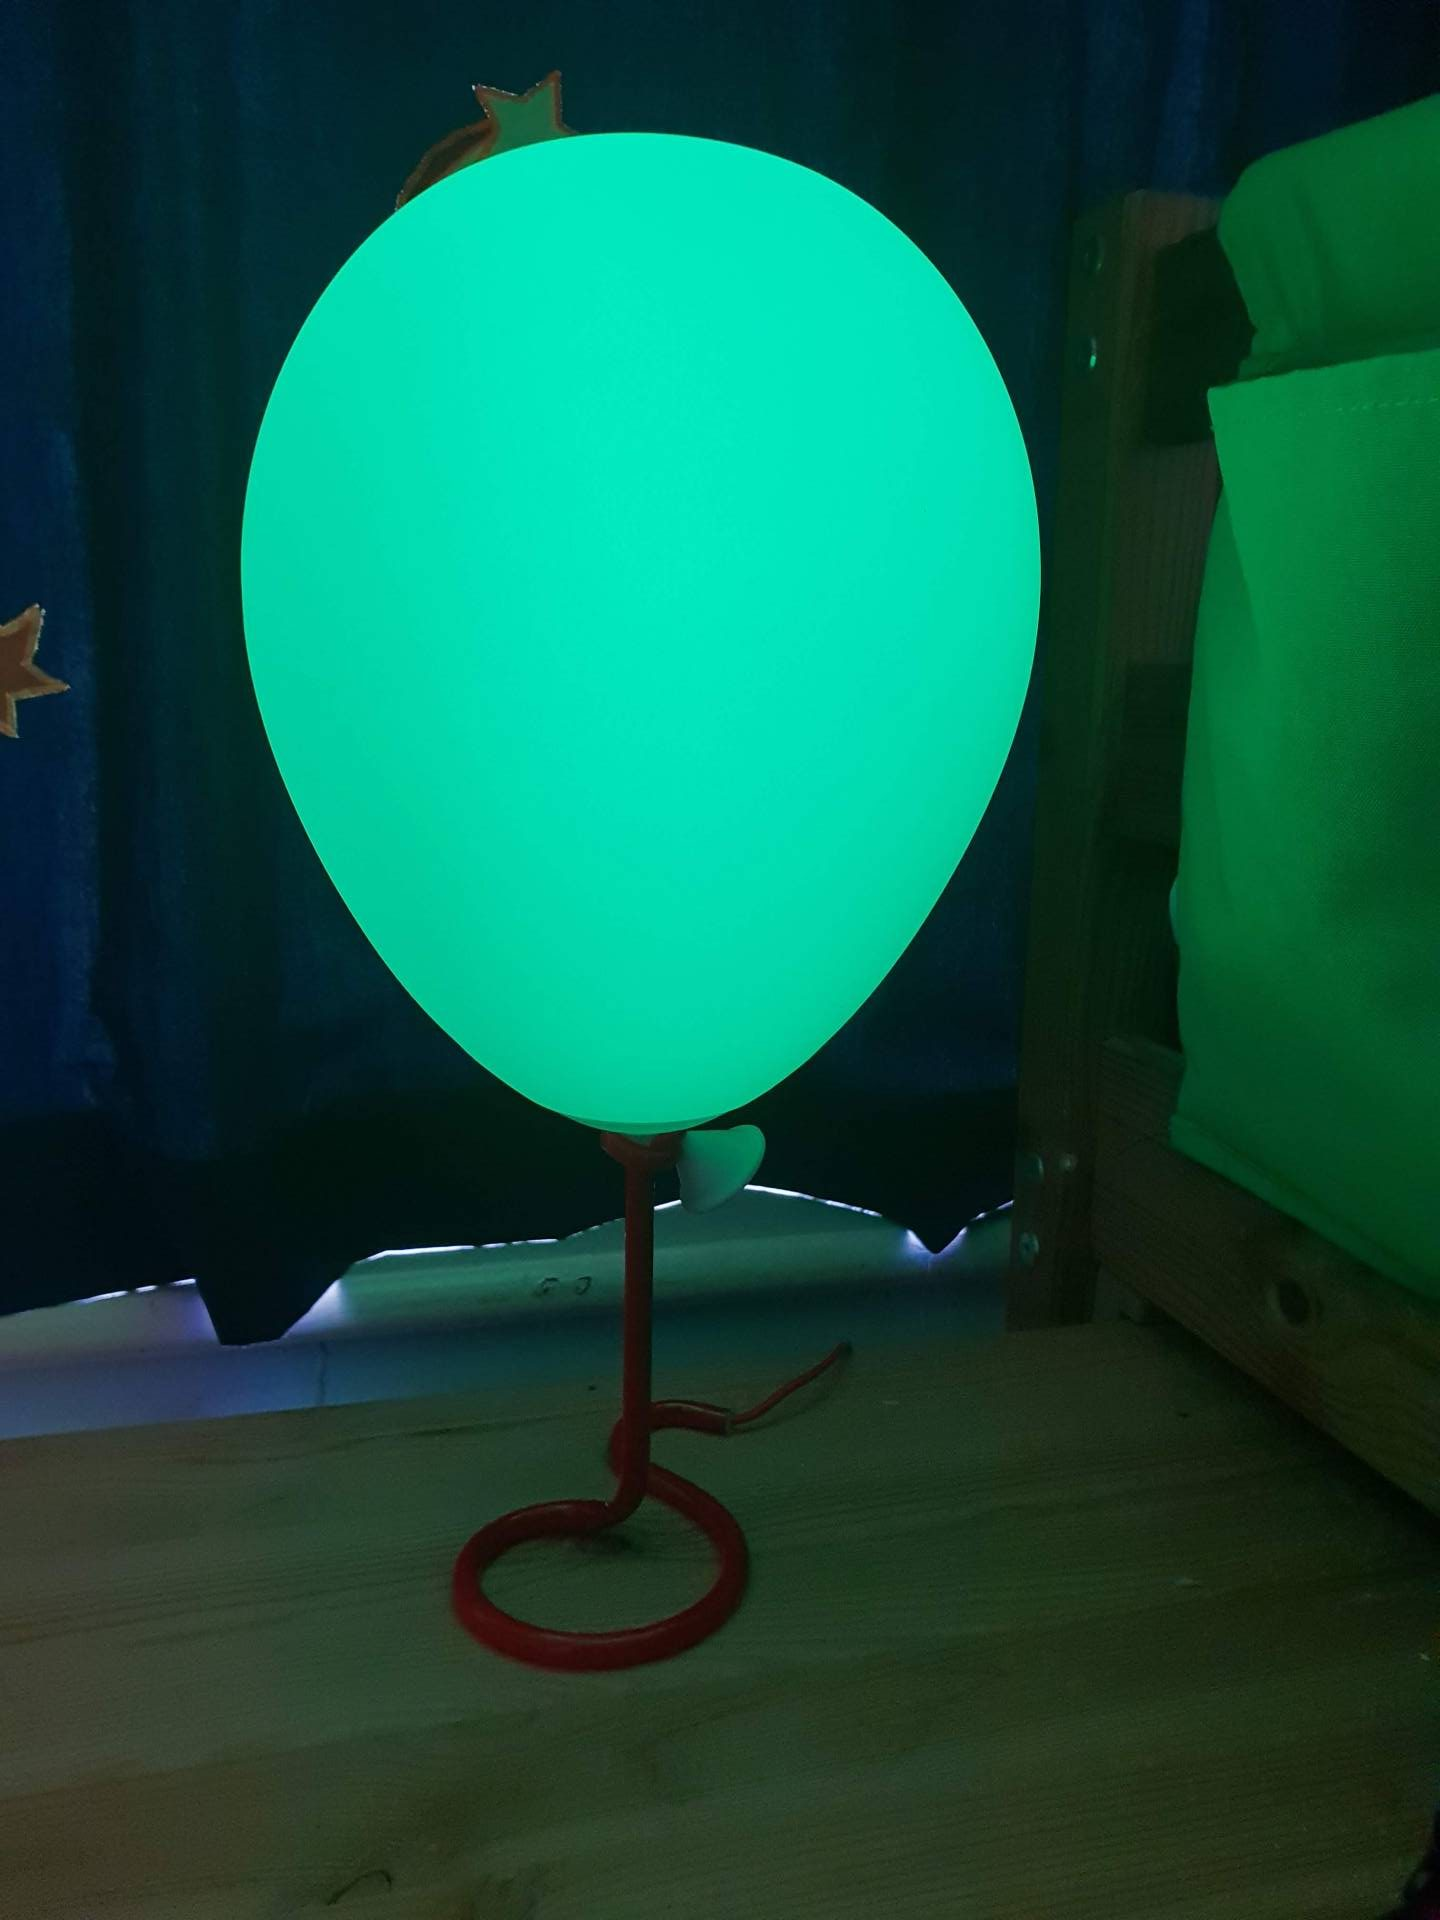 balloon-colour-changing-light